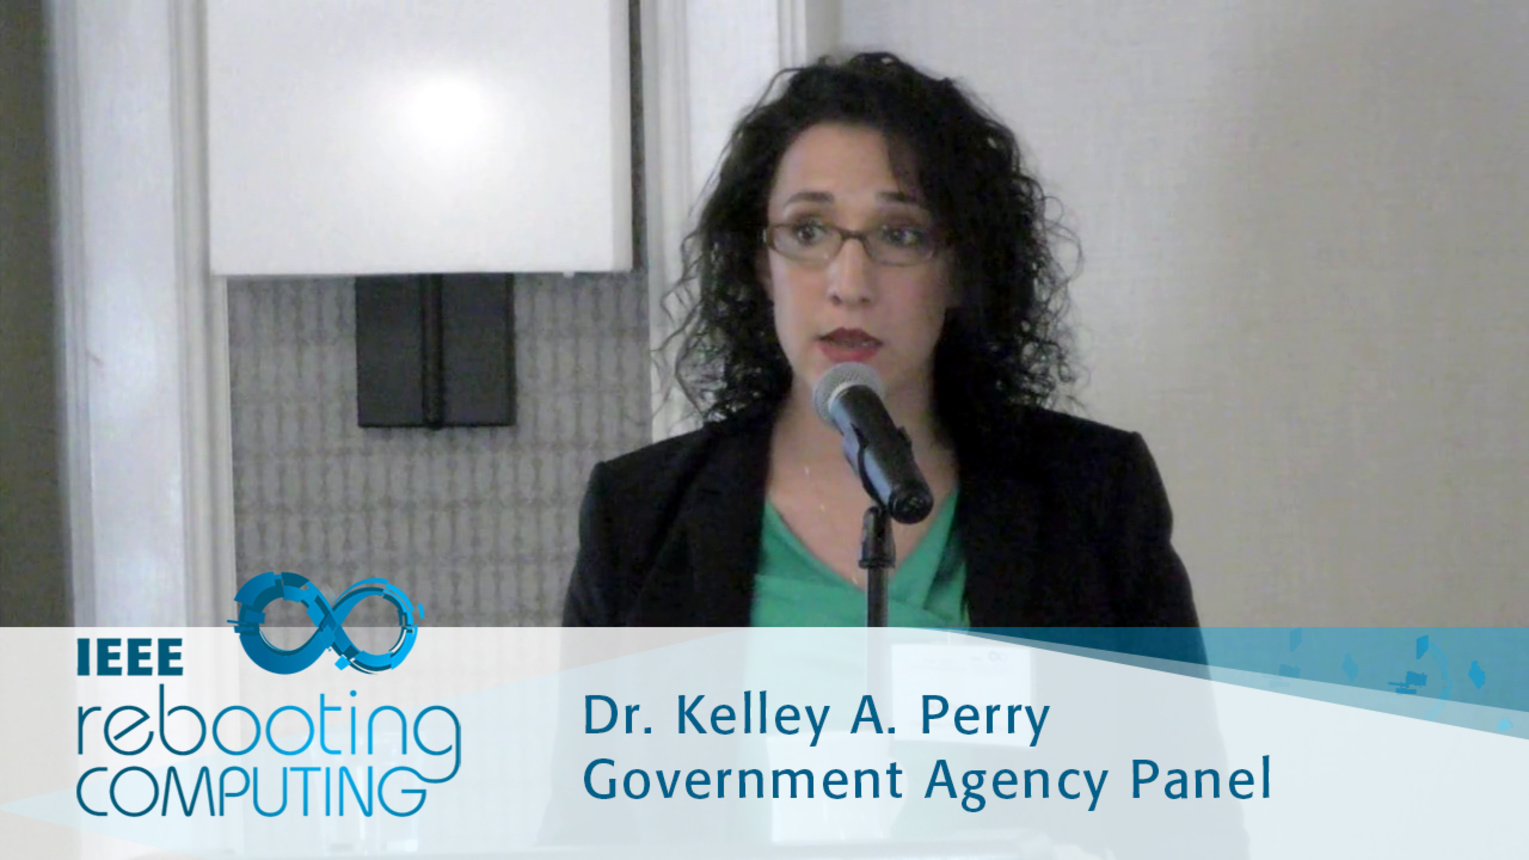 DOE-ASCR Activities Towards Rebooting Computing - Kelley Perry: 2016 International Conference on Rebooting Computing